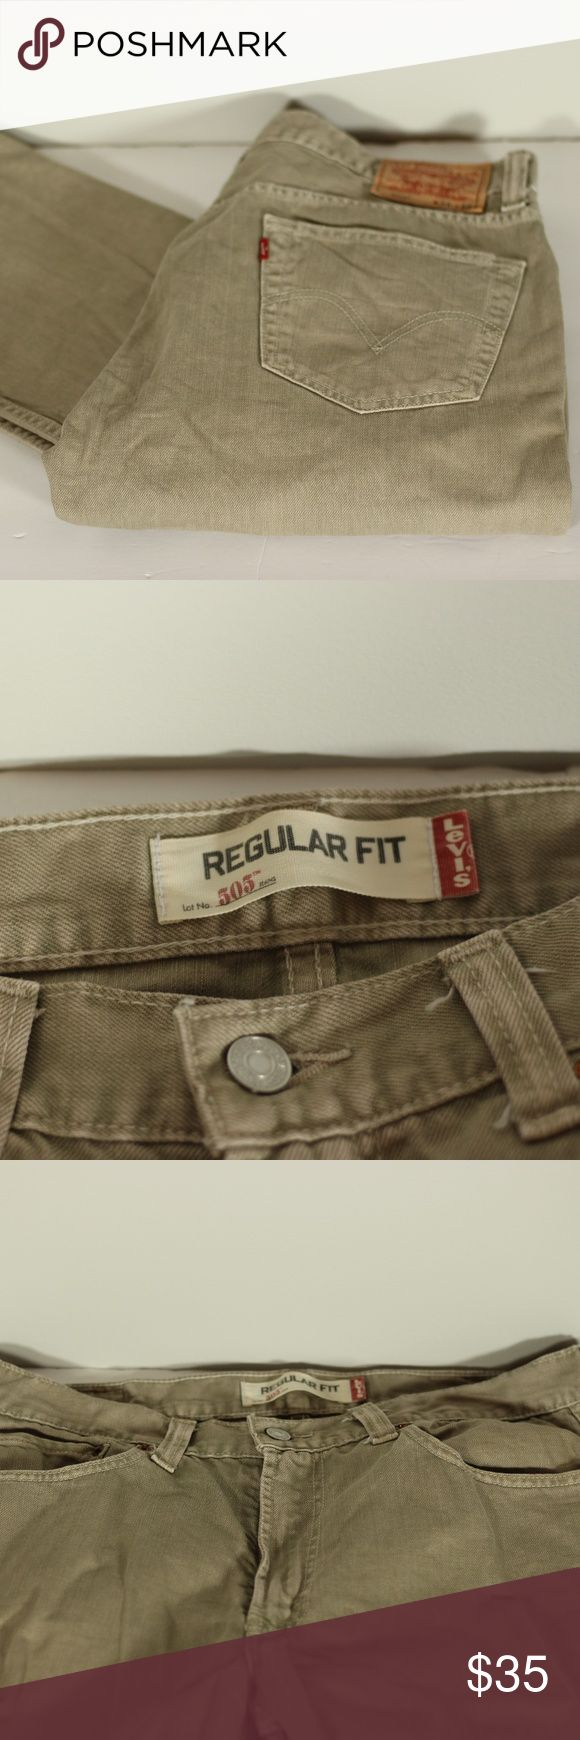 """Levi's Jeans 505 Tan 34x32 Pre-Loved but in excellent used condition. Levi's 505 jeans for men. Size 34Wx32L. Color Tan. Regular Fit  Approximately 45"""" from waist to hem Inseam is approx 32"""" Boot is approx 8.5"""" wide Levi's Jeans Straight"""